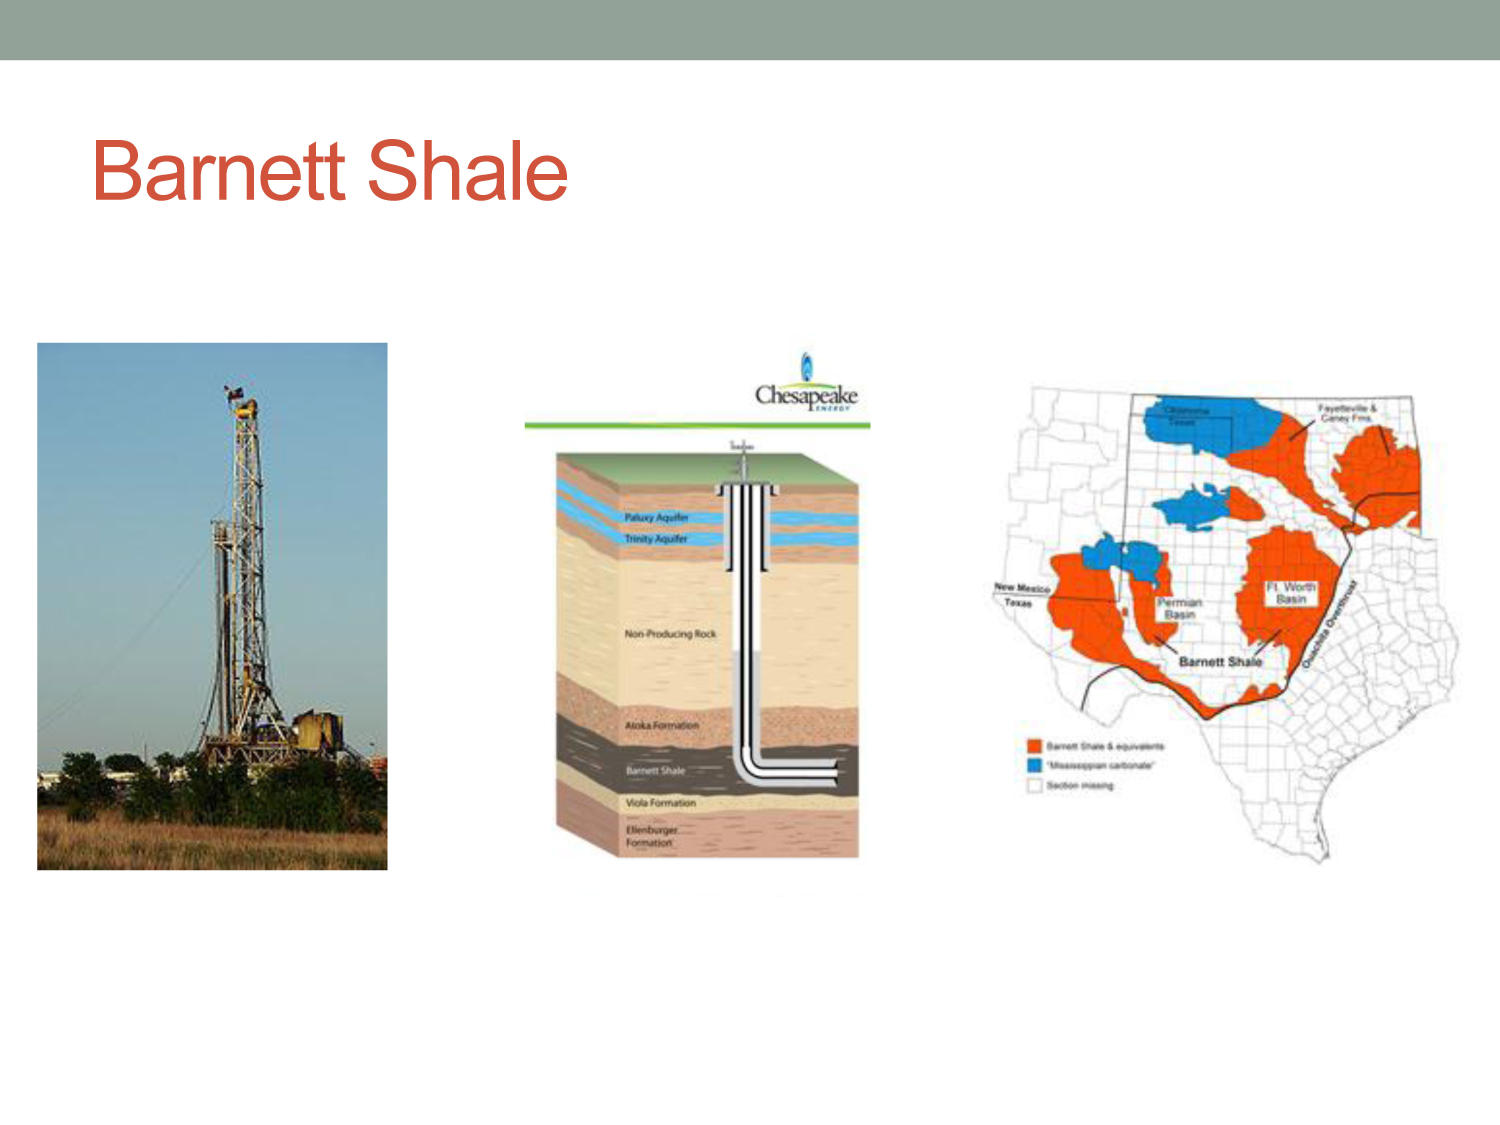 Economic Impacts of the Natural Gas Industry in North Texas                                                                                                      [Sequence #]: 3 of 11